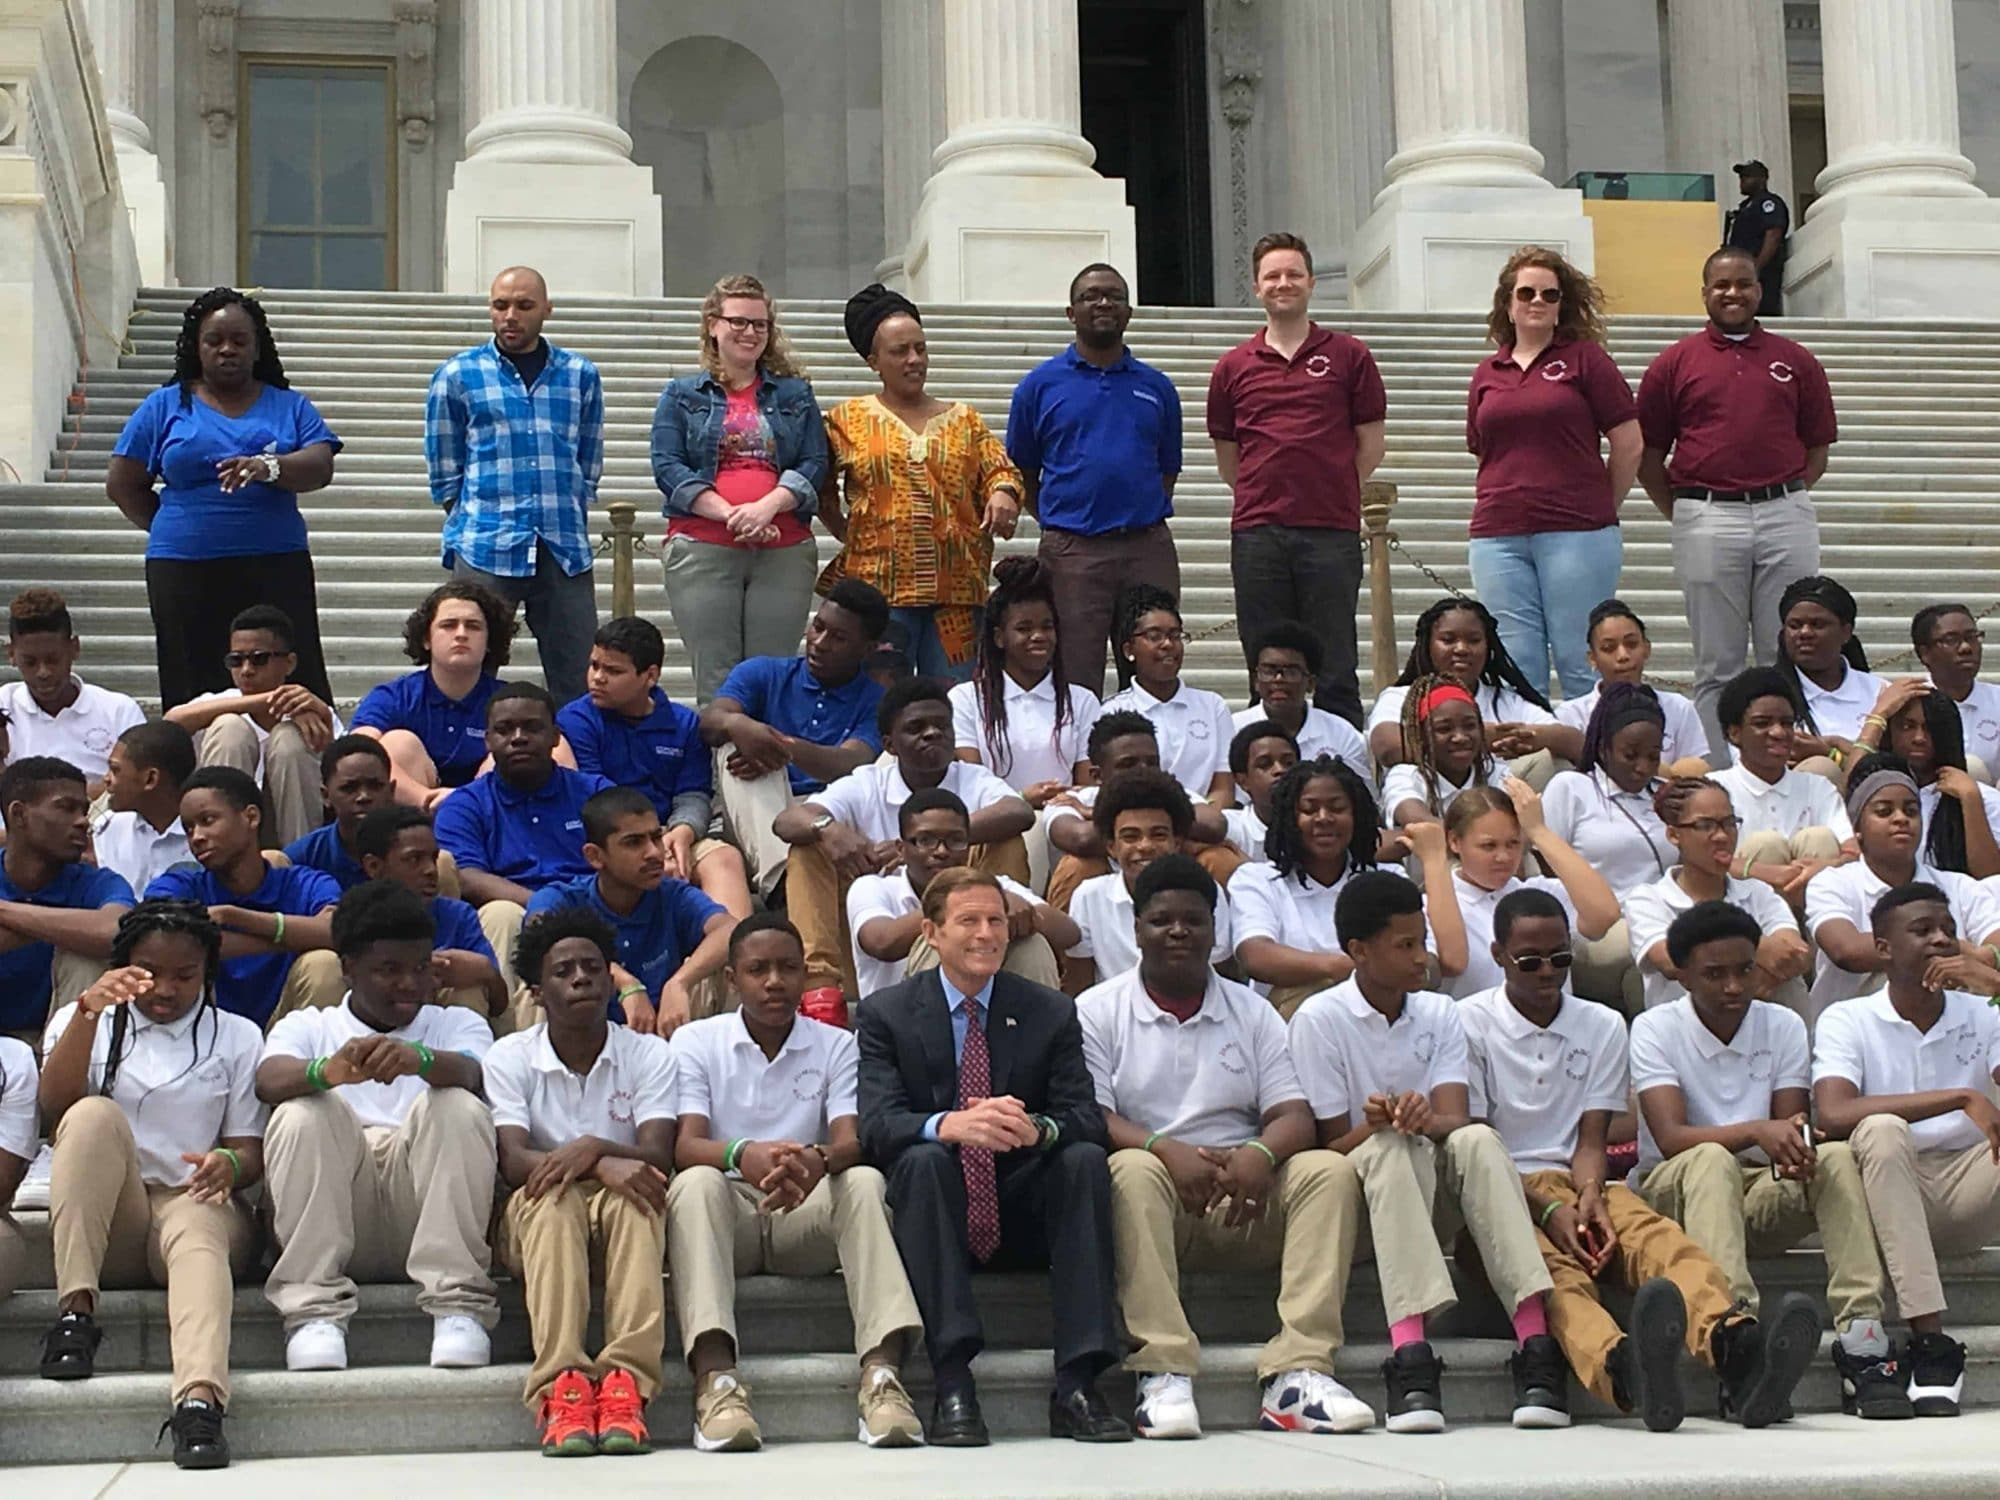 Senator Murphy with a students on a civics class trip to Washington dc at the US Capitol